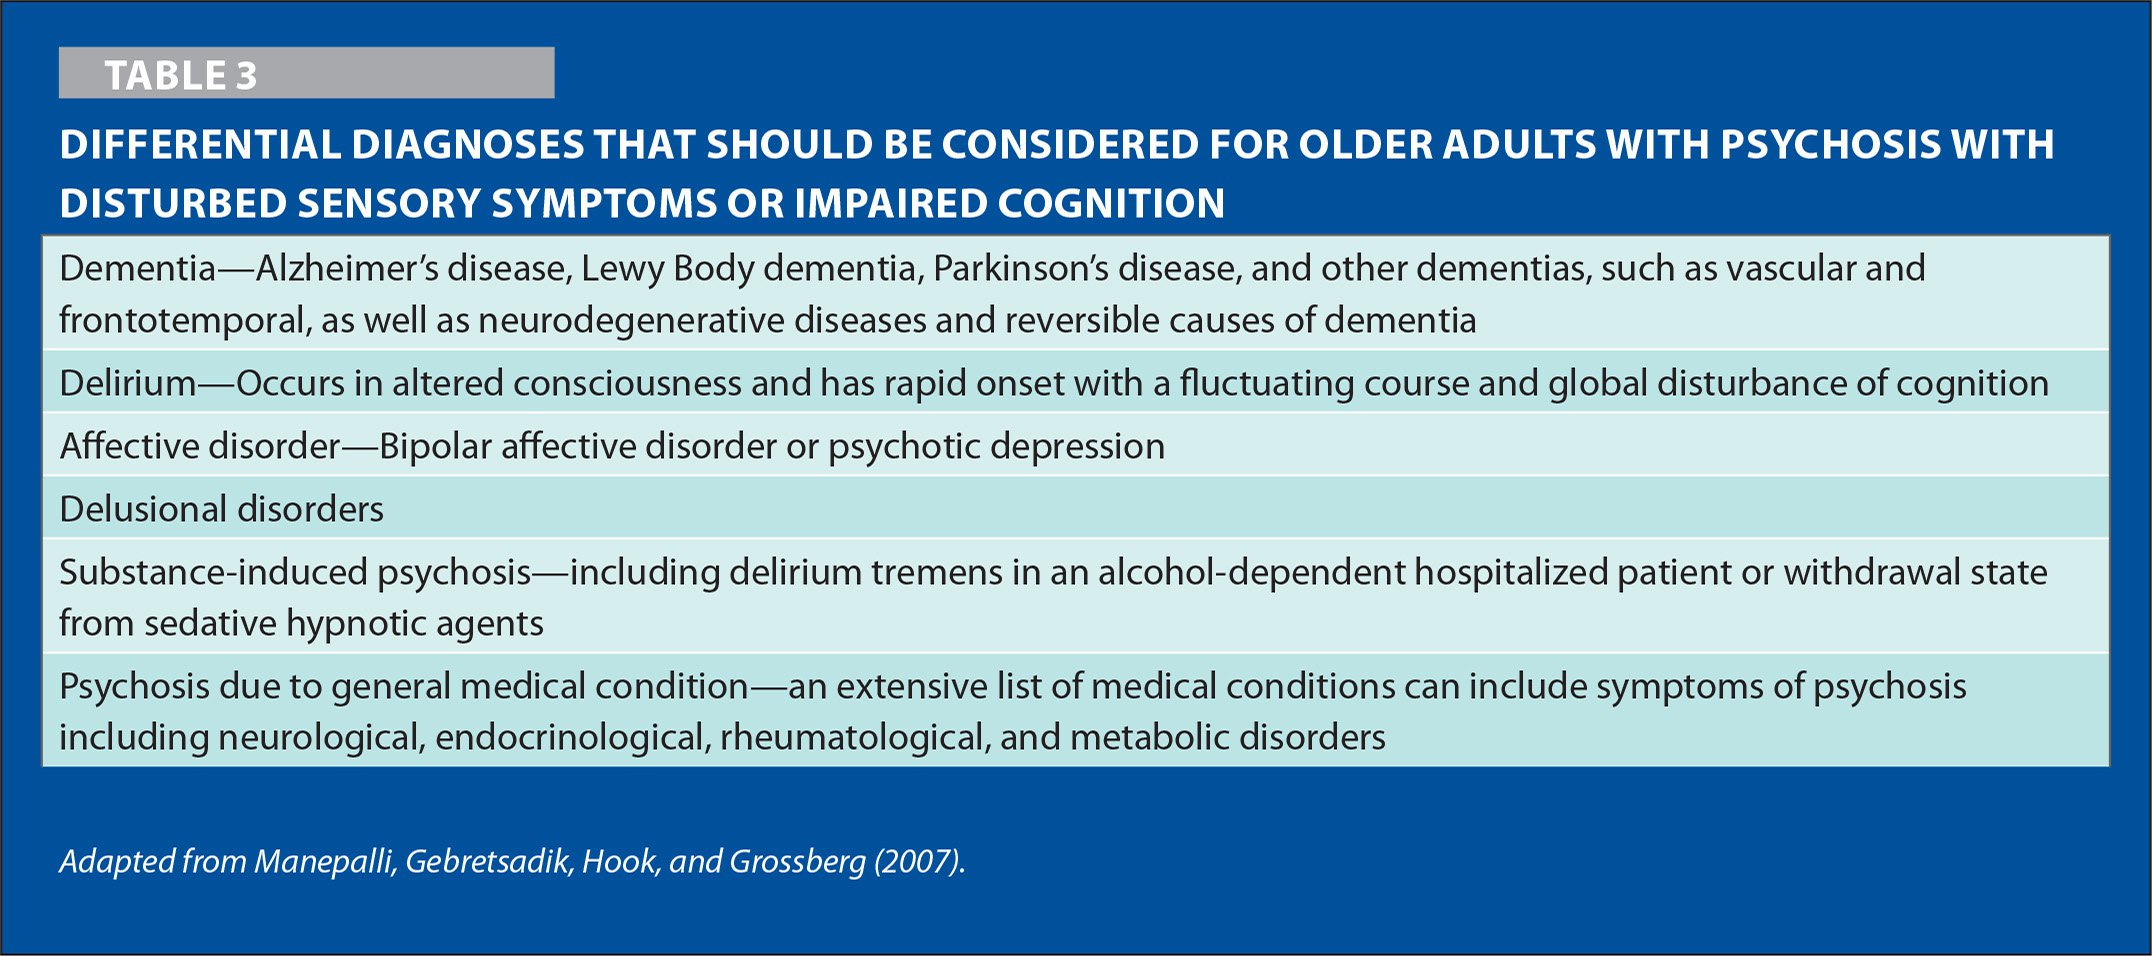 Differential Diagnoses that Should be Considered for Older Adults with Psychosis with Disturbed Sensory Symptoms or Impaired Cognition